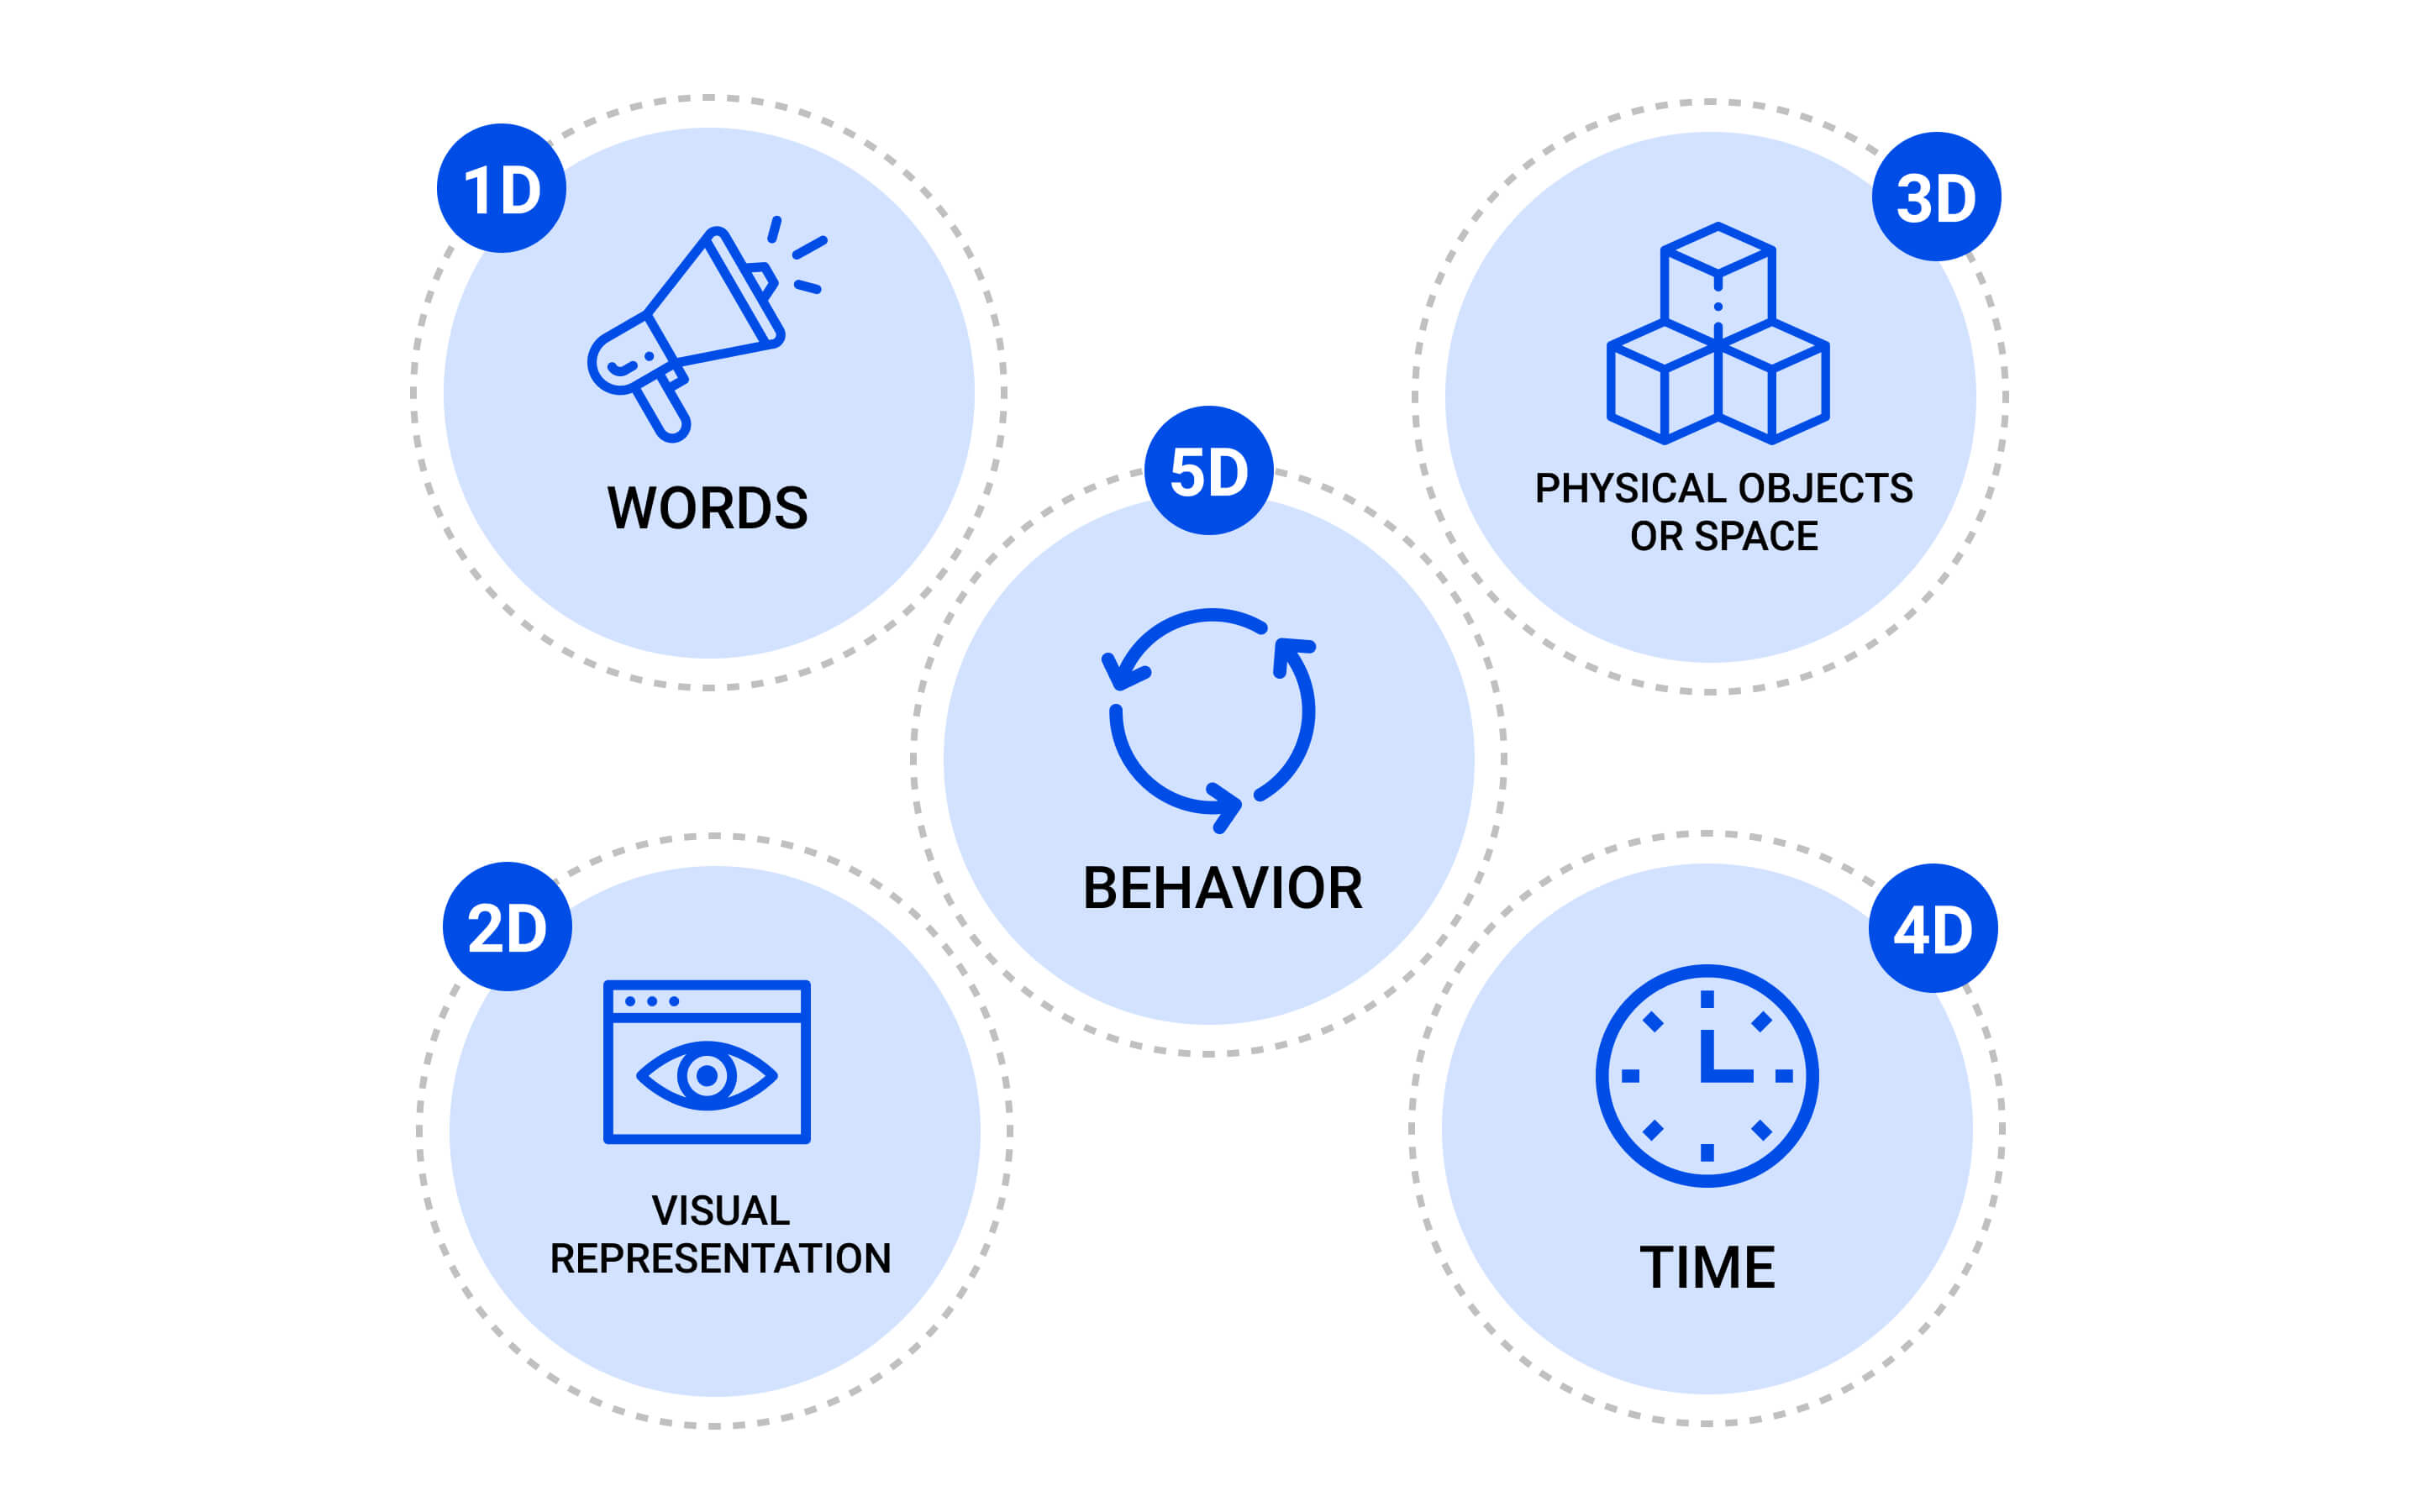 5 Dimensions of Interaction Design - a model that outlines what makes up a quality interaction design.